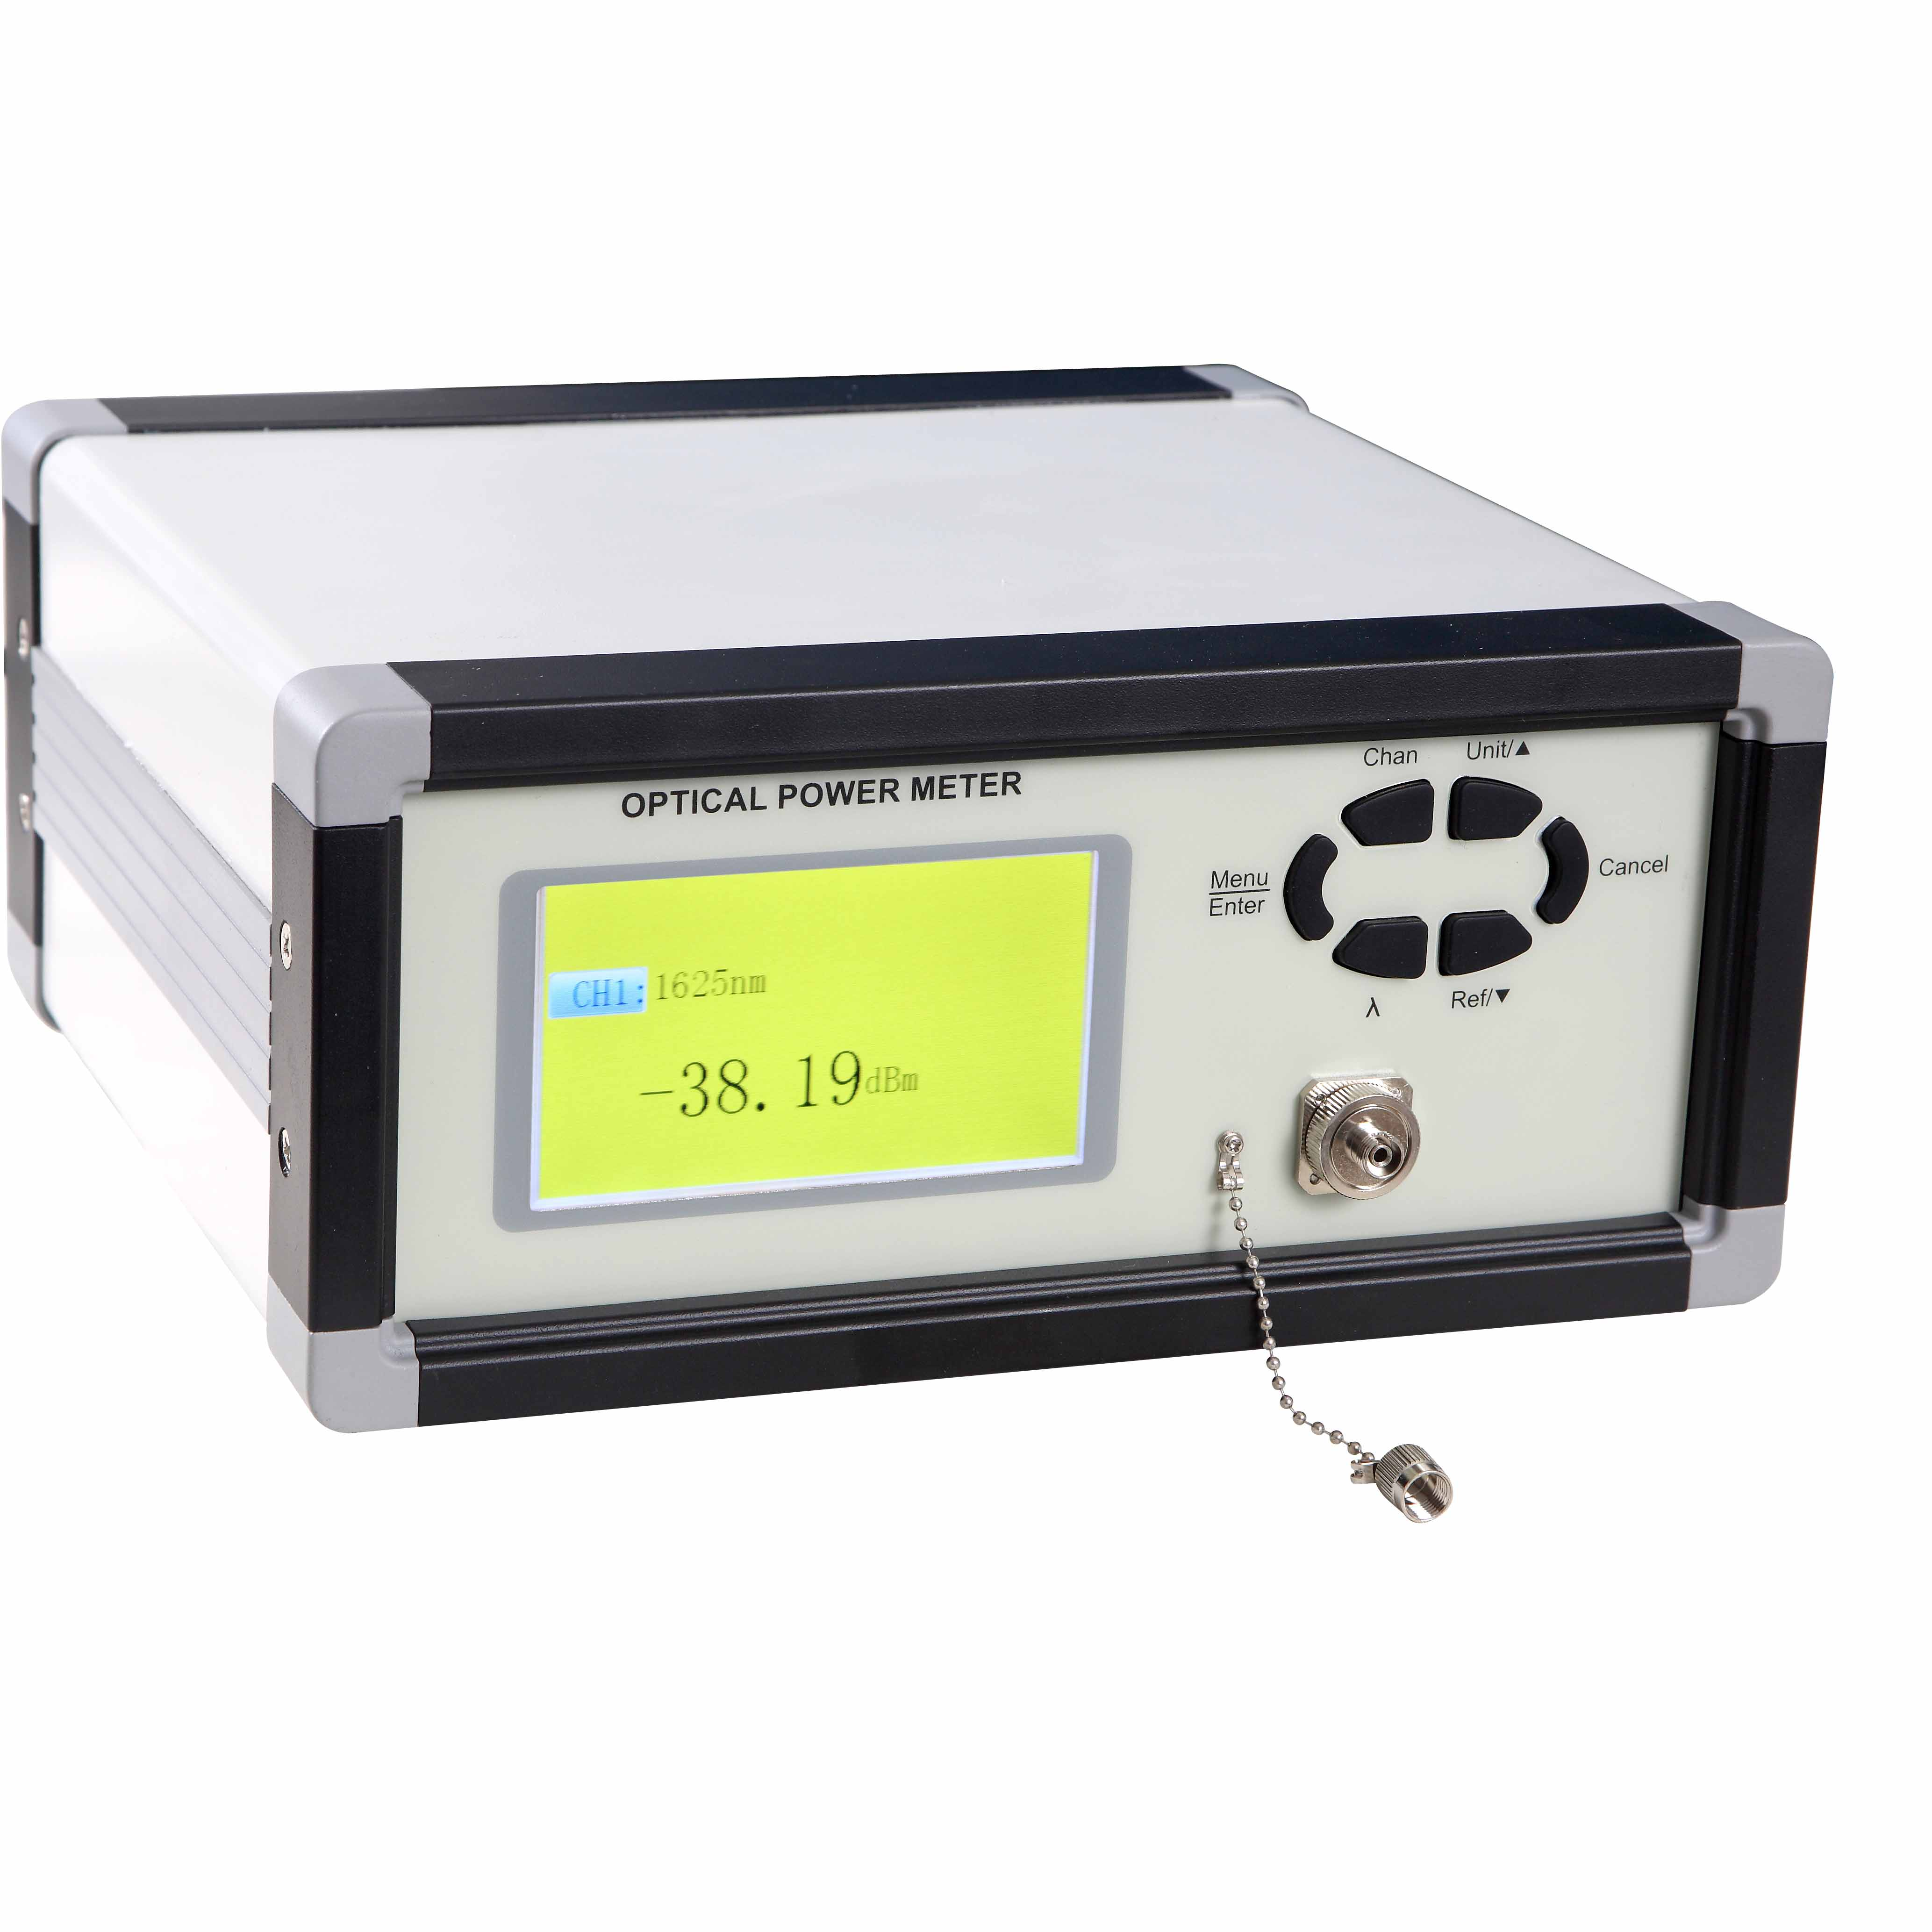 Bench-top Optical Power Meter